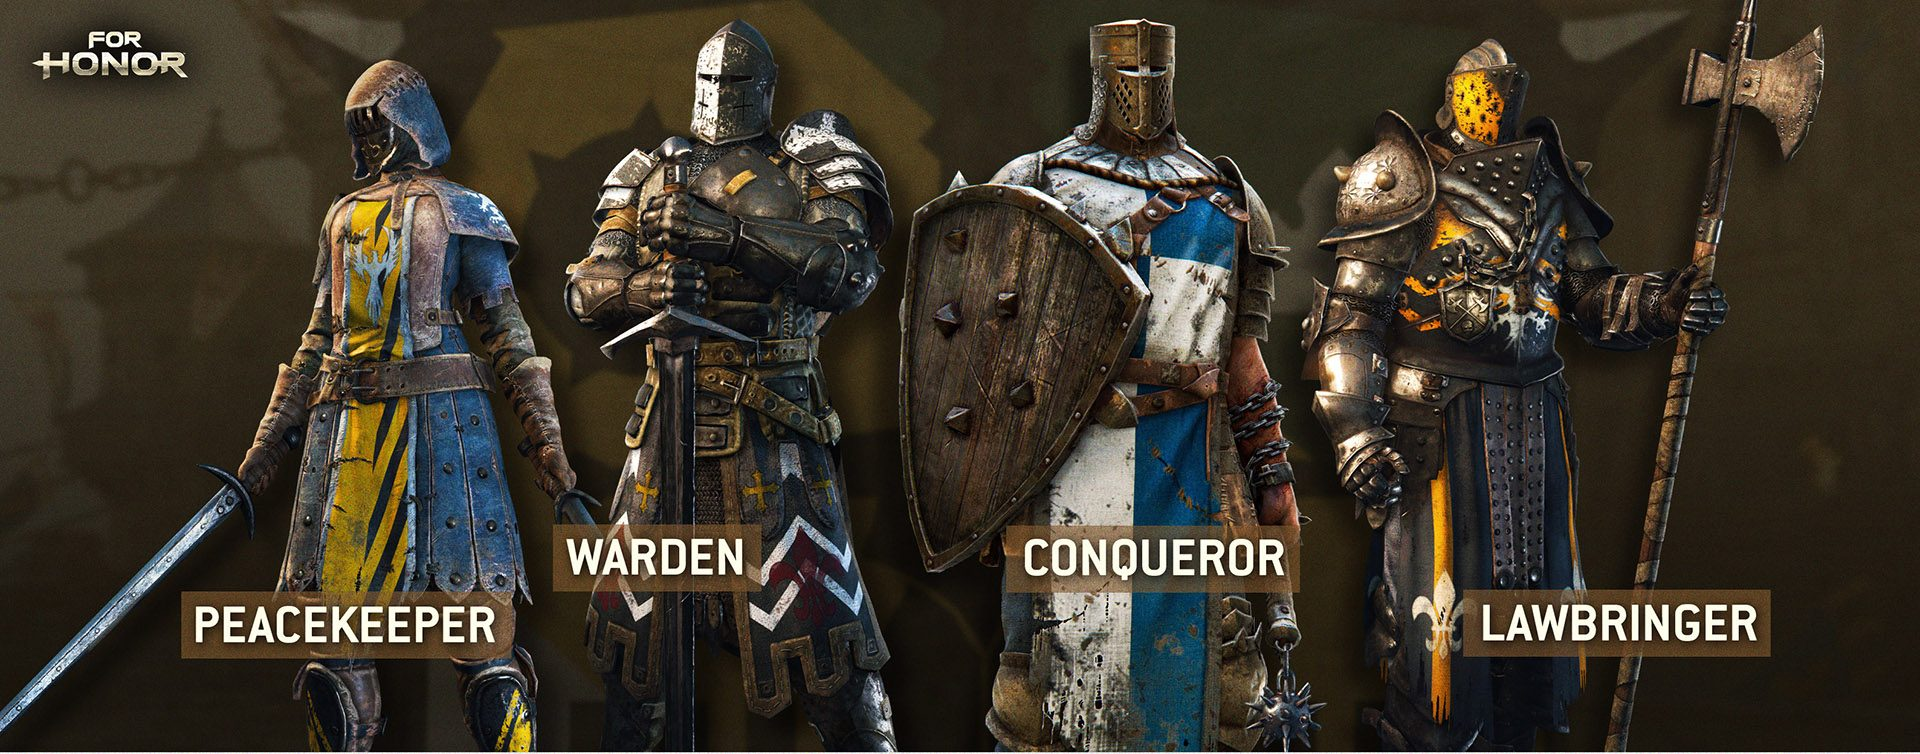 For Honor_knights.